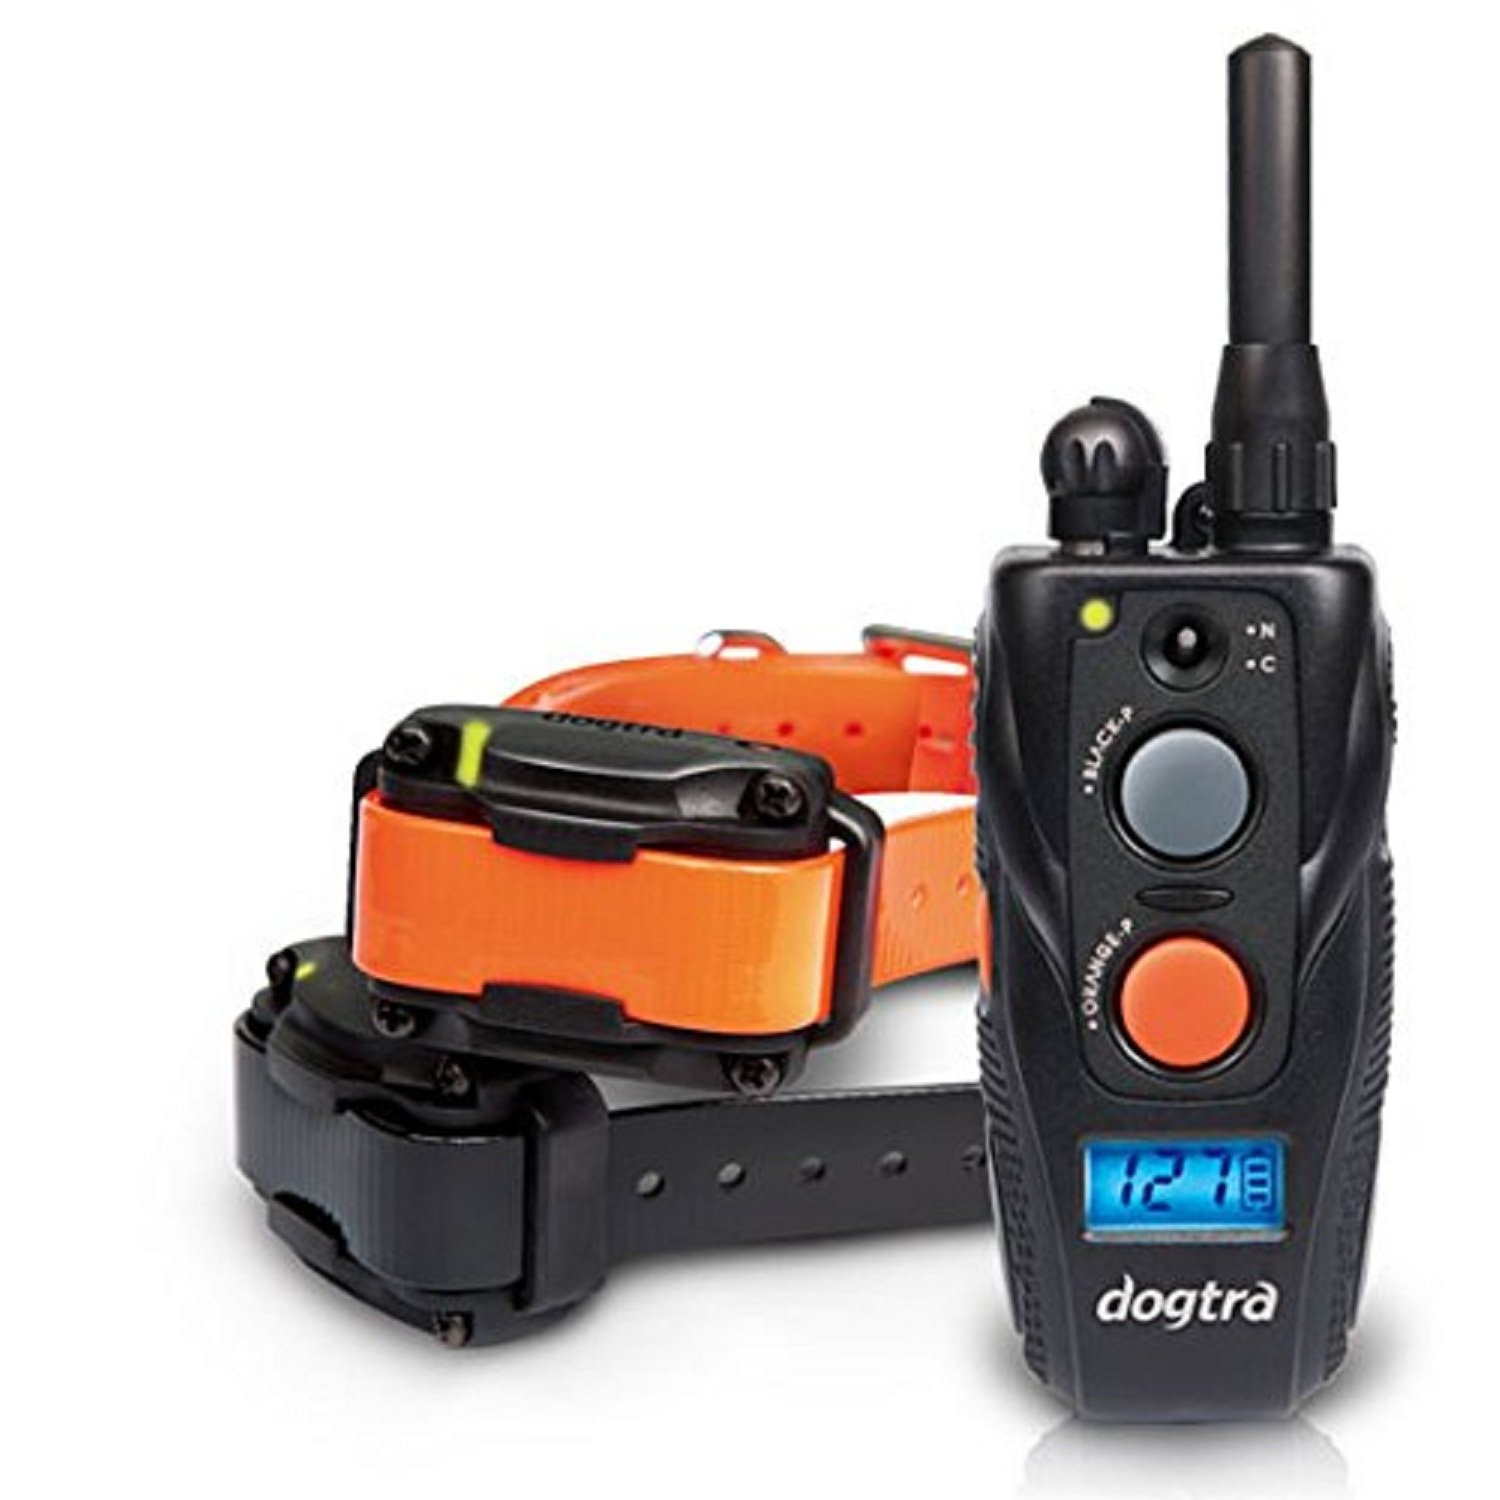 Dogtra 282C 1/2 Mile 2 Dog Compact Remote Training Collar System by Dogtra (Image #1)